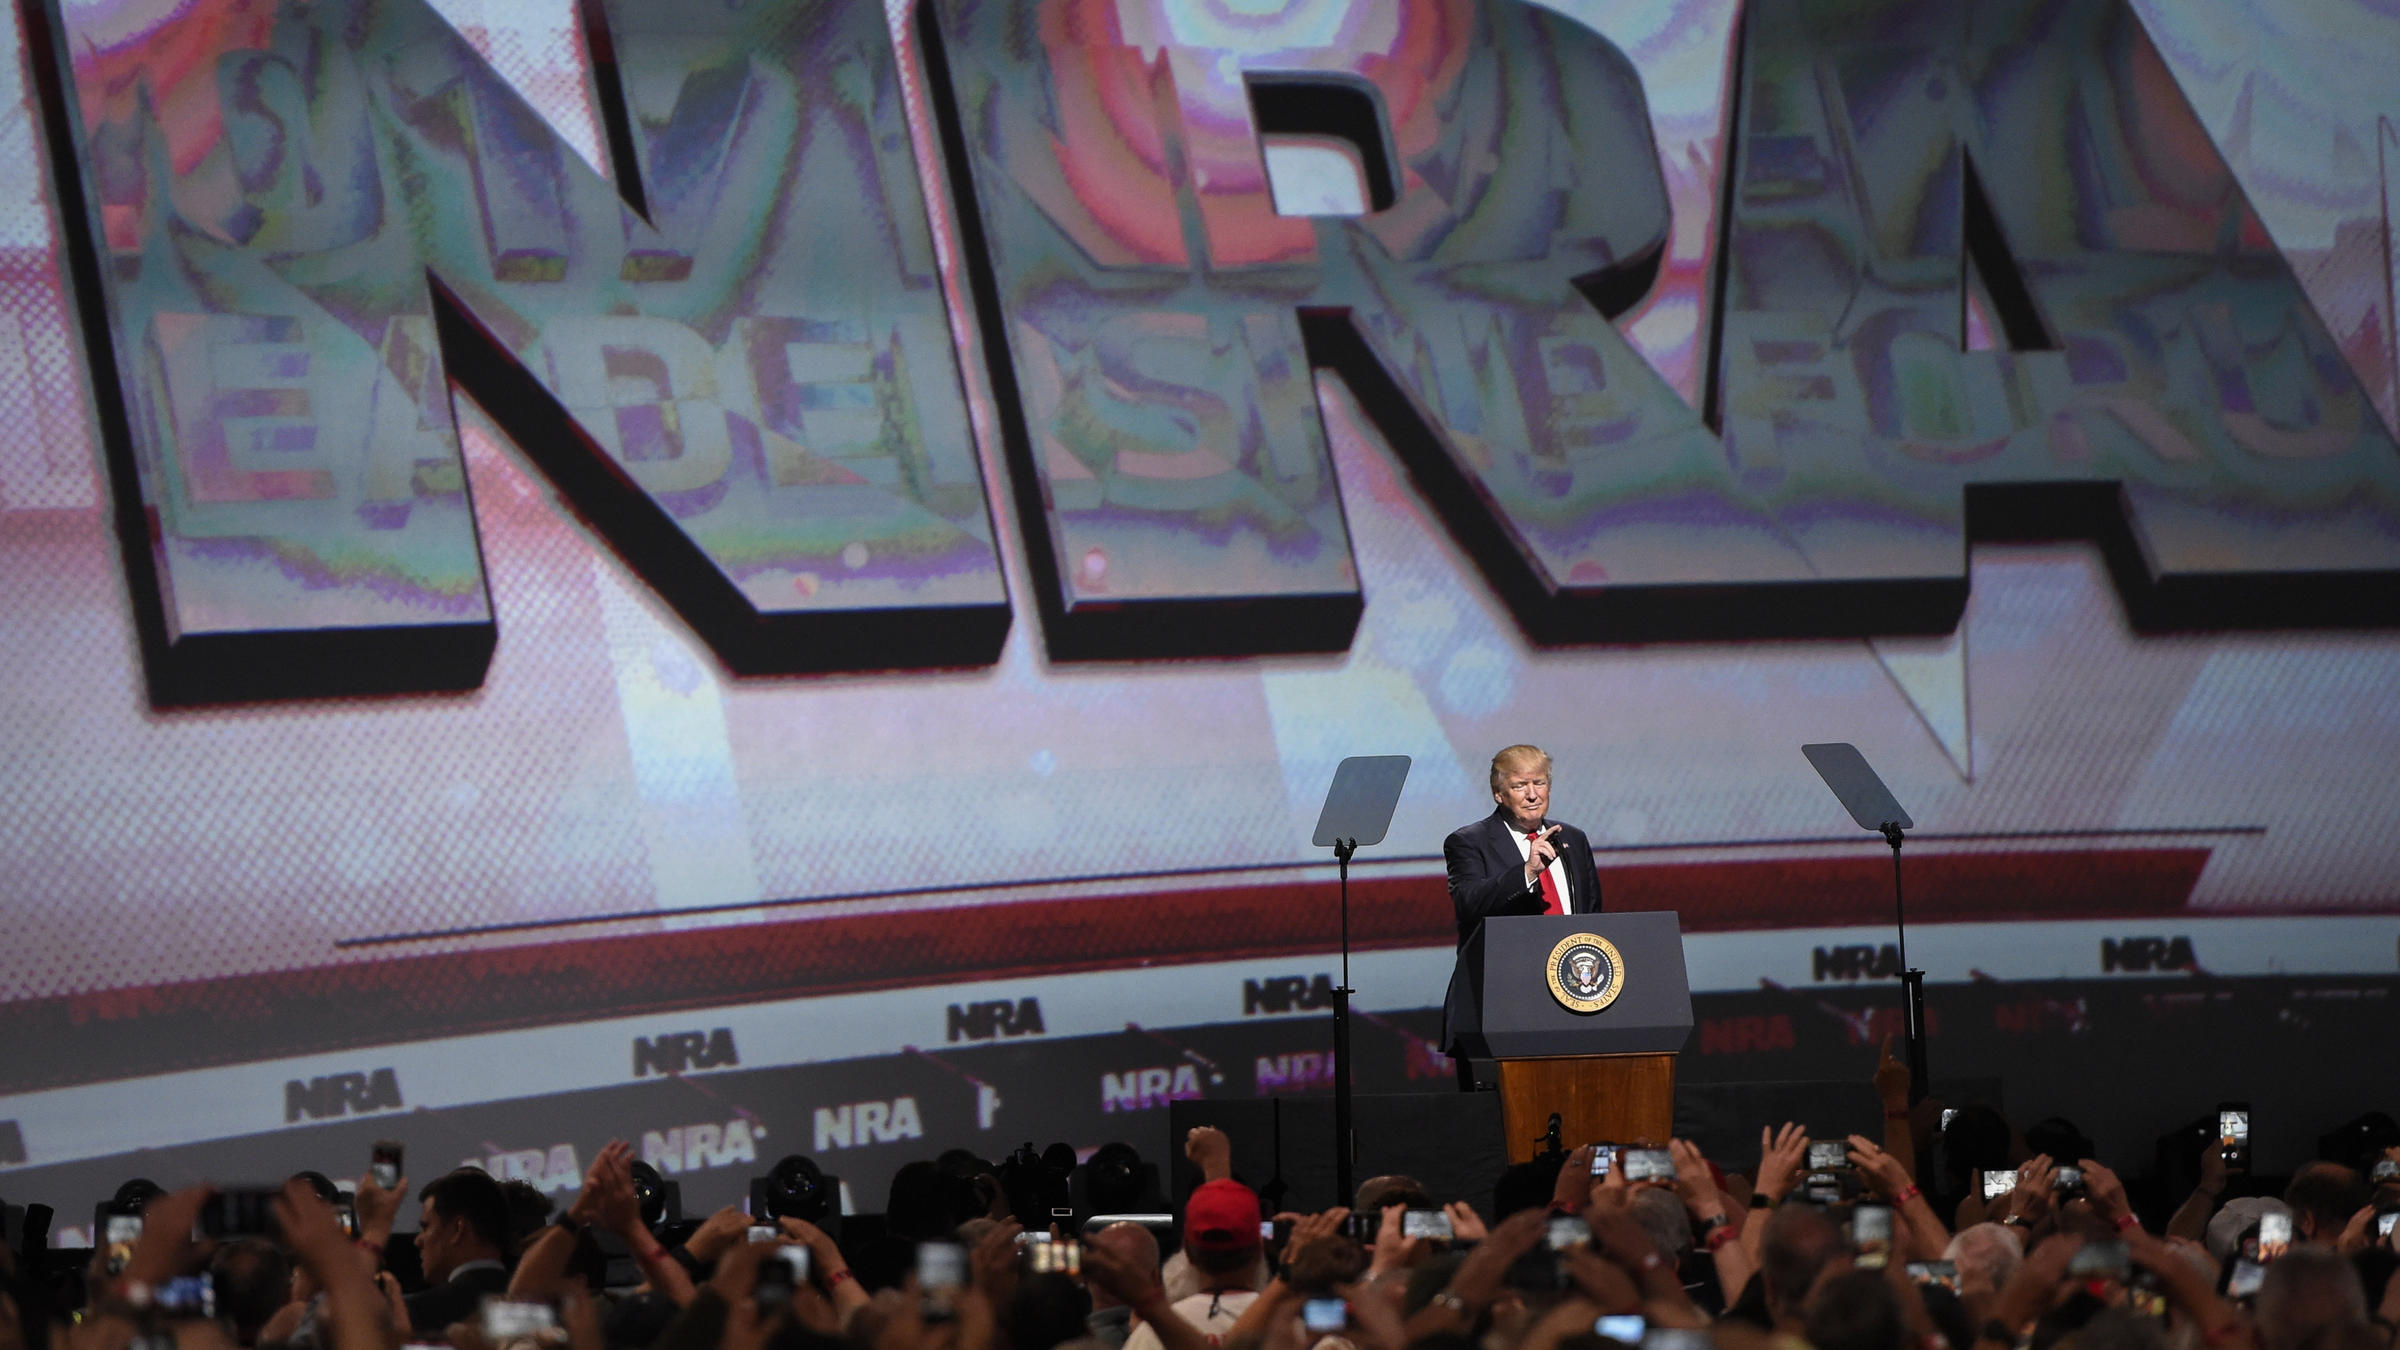 Trump to speak at NRA meeting in Dallas